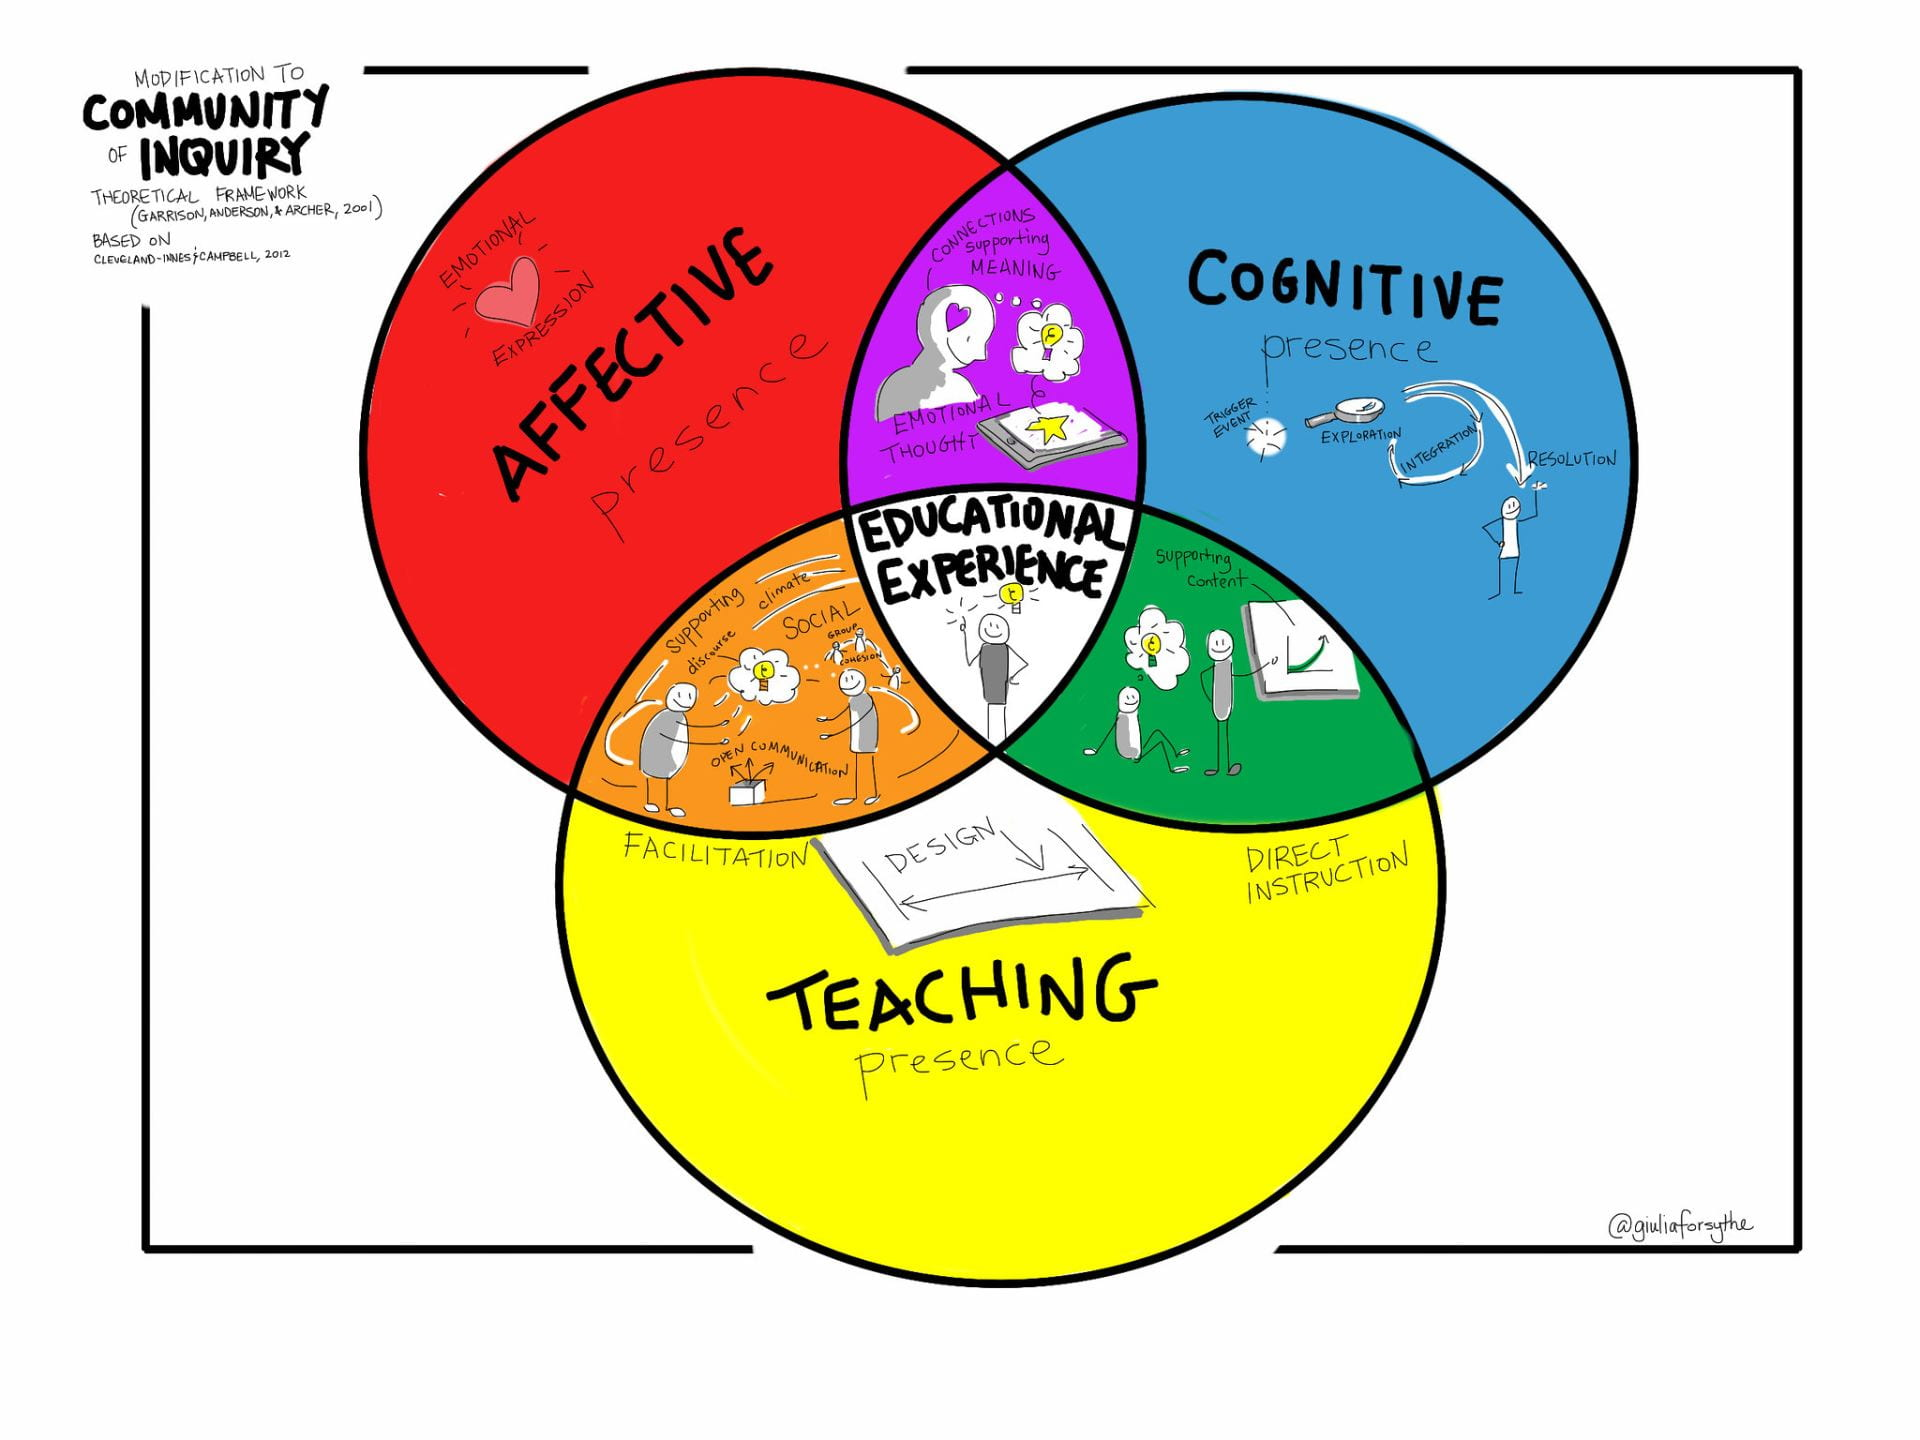 A venn diagram, with 3 overlapping circles. Affective, Constructive and teaching. In the intersection of all 3 is educational experience